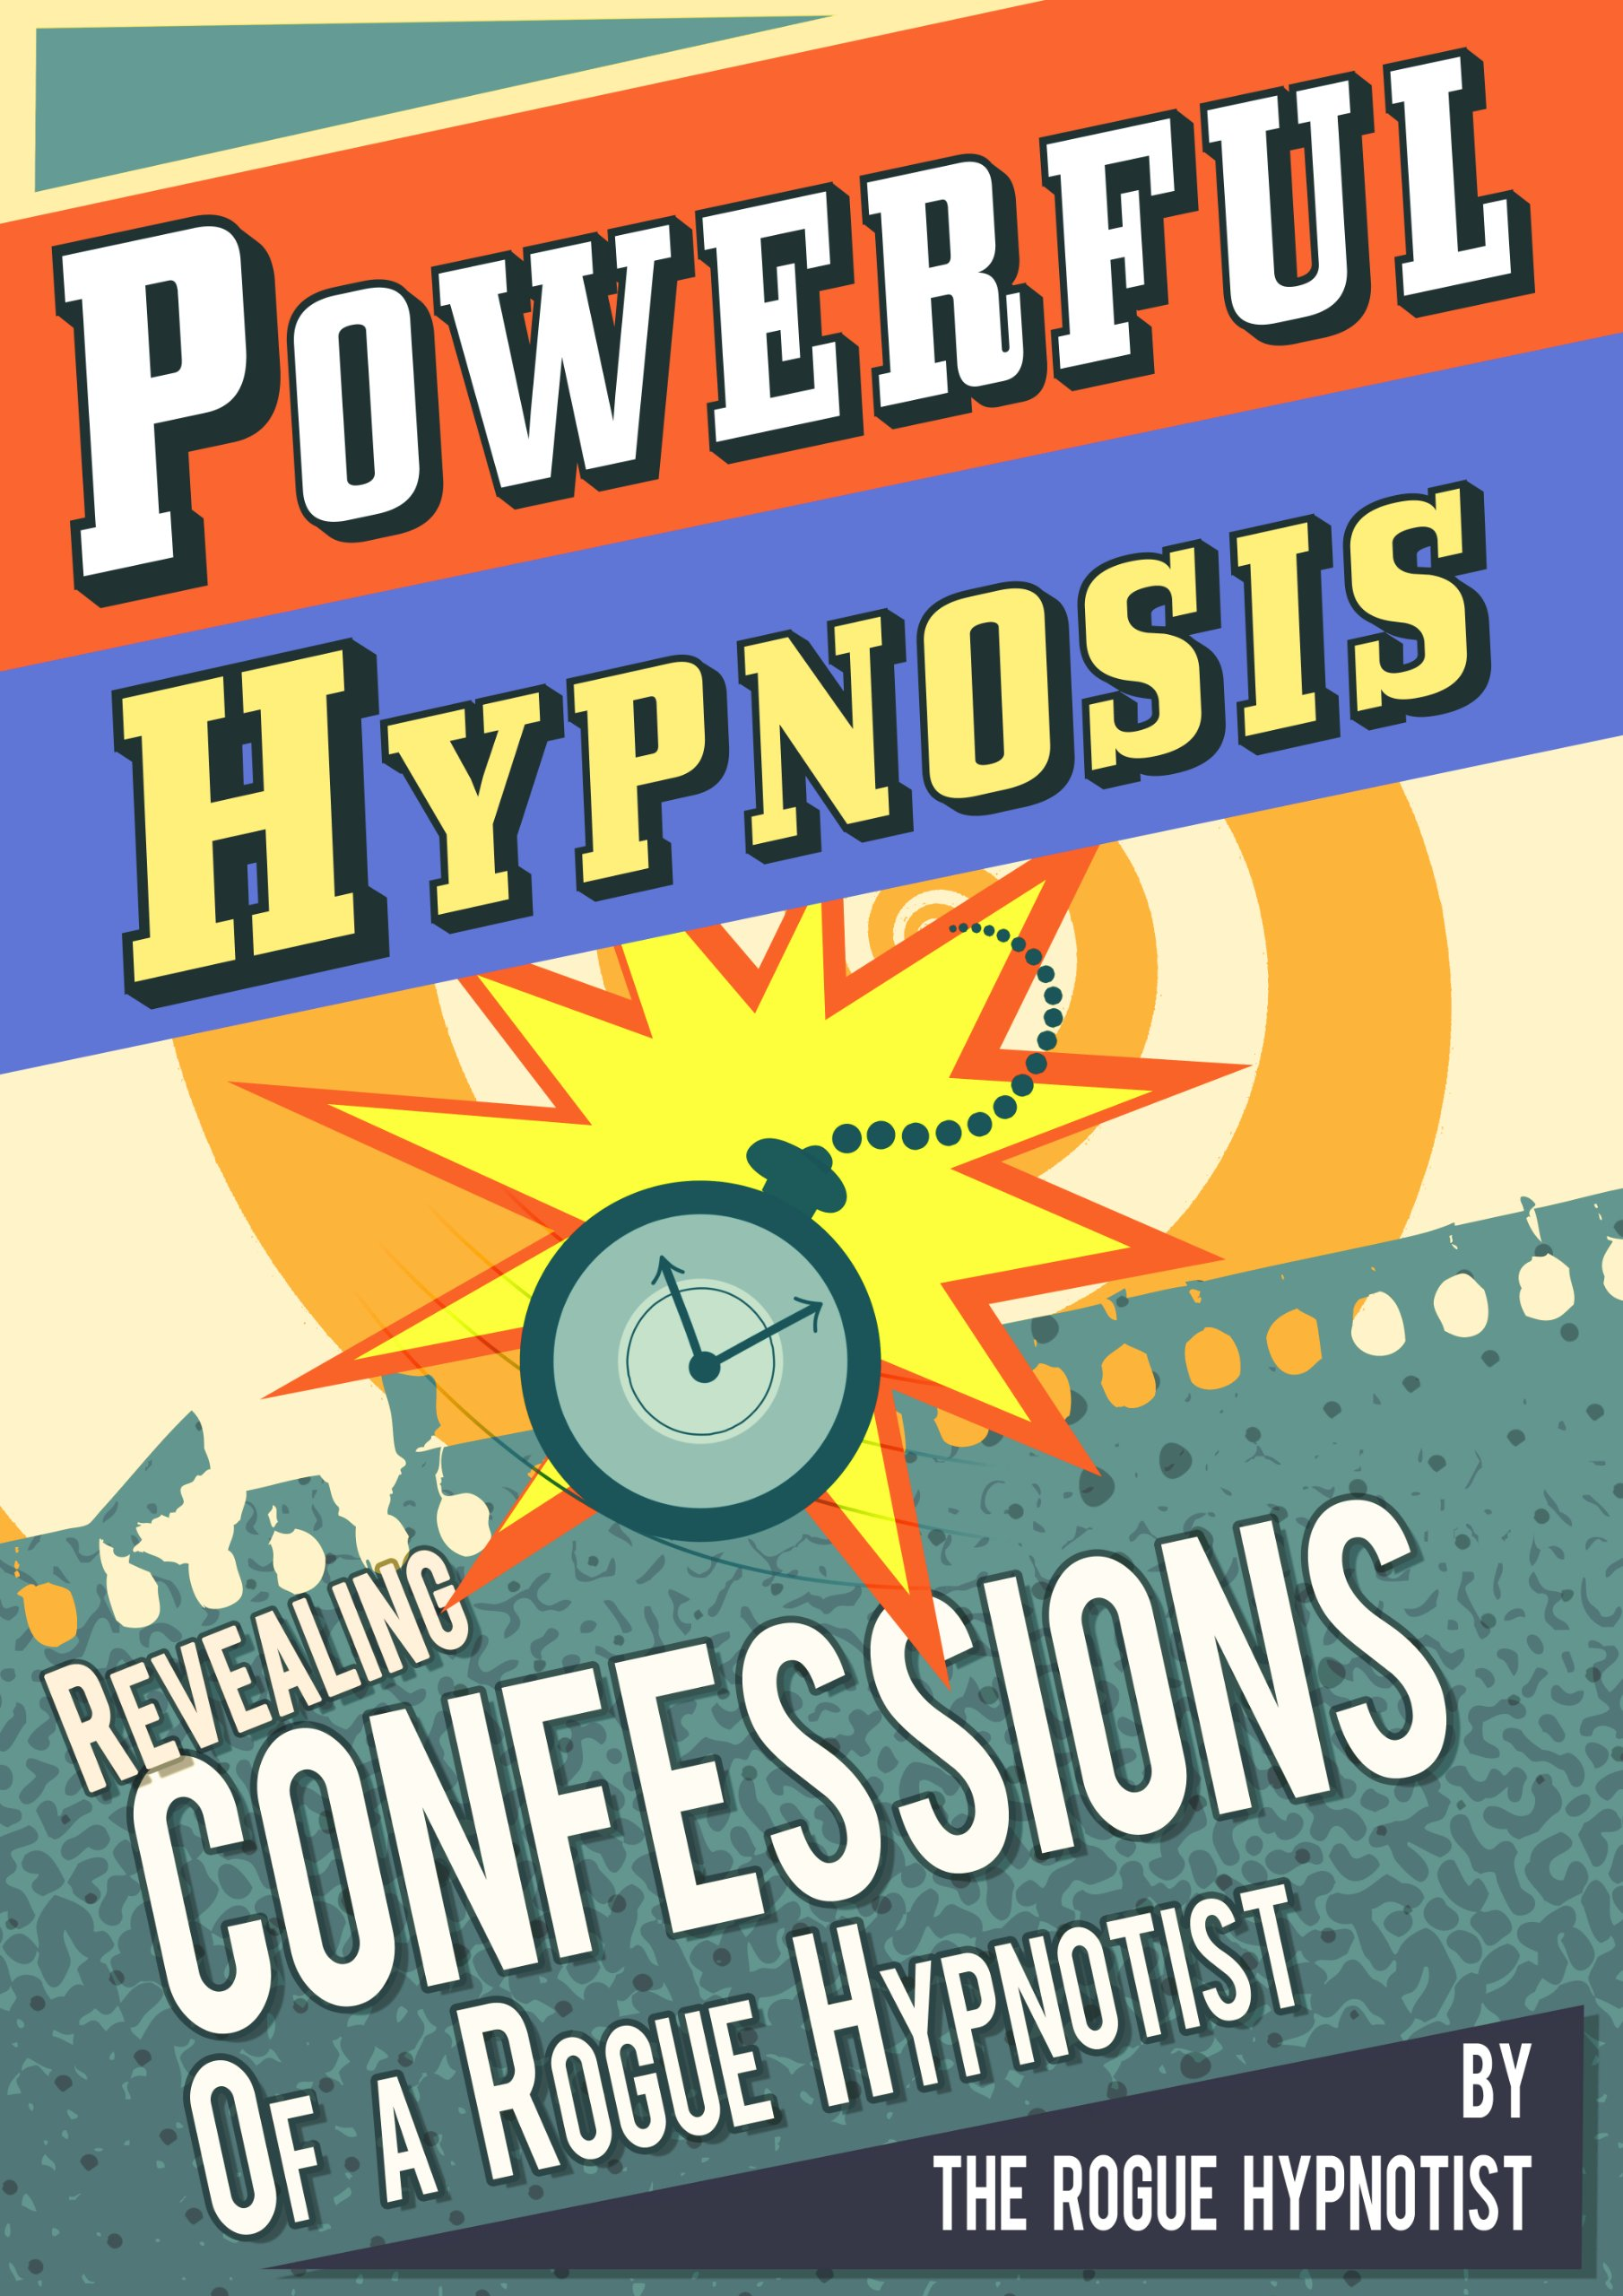 Powerful Hypnosis   Revealing Confessions of a Rogue Hypnotist (English Edition)